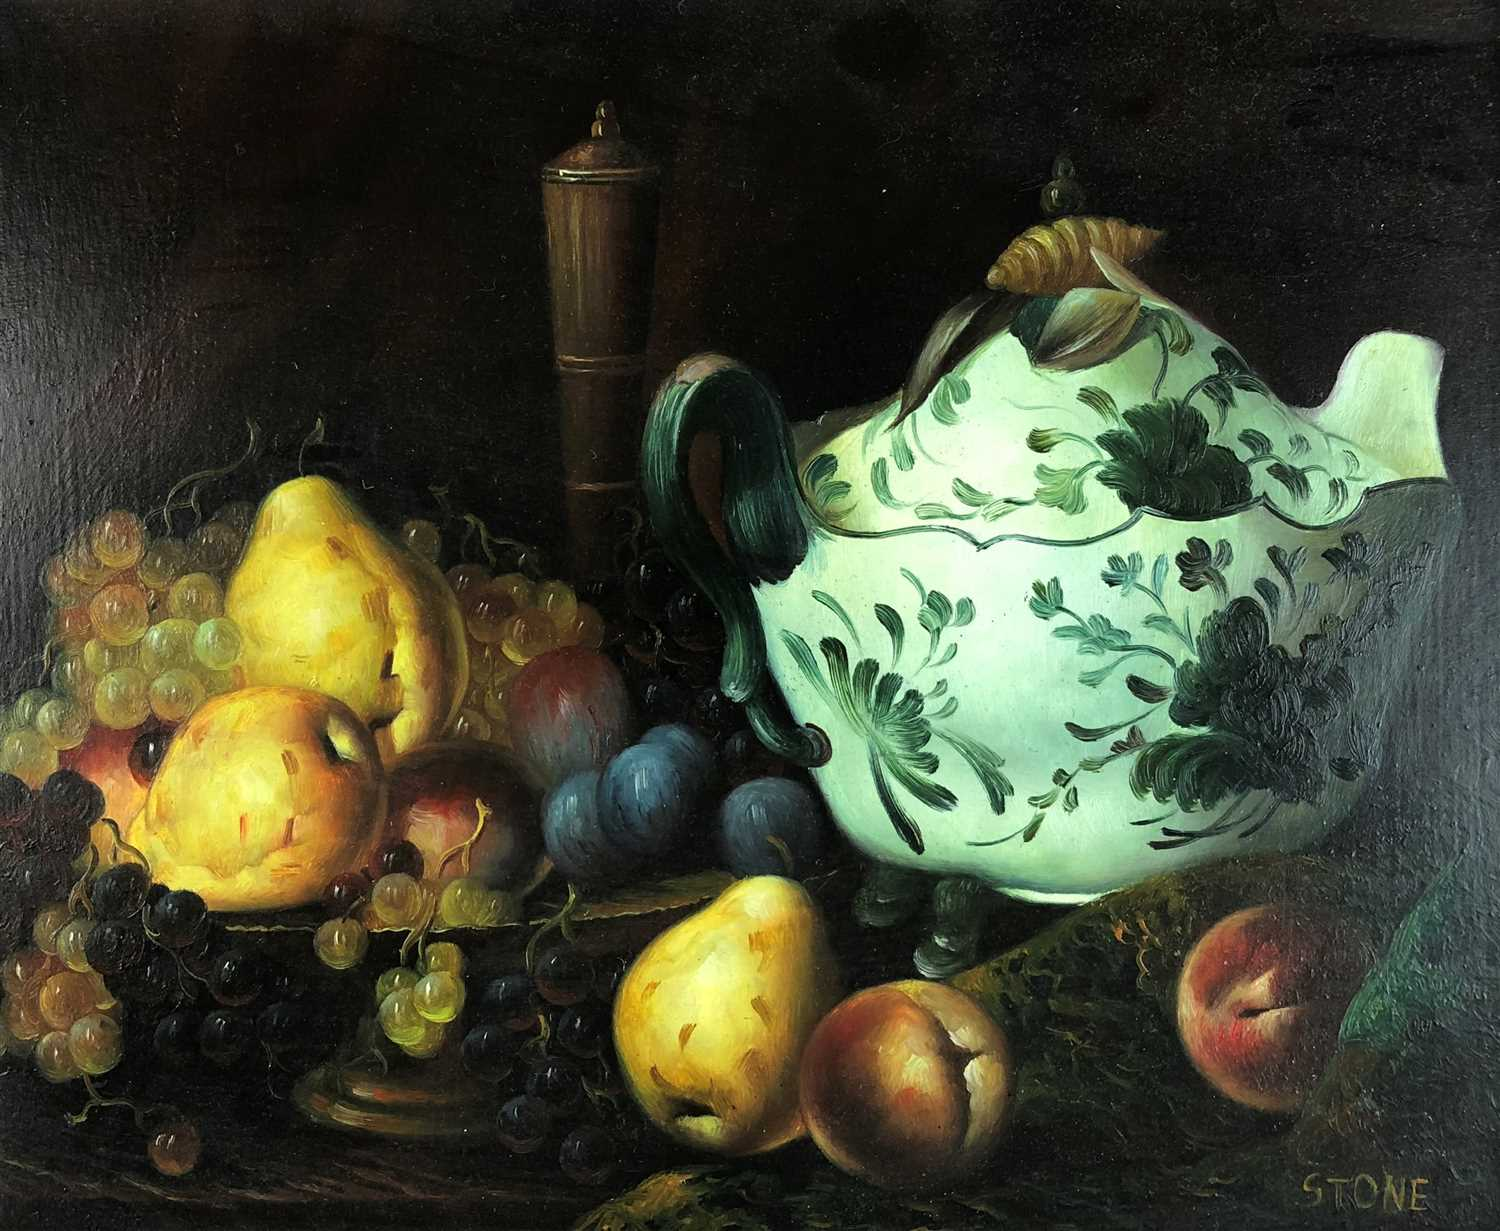 Lot 99-Stone (20th century), still life